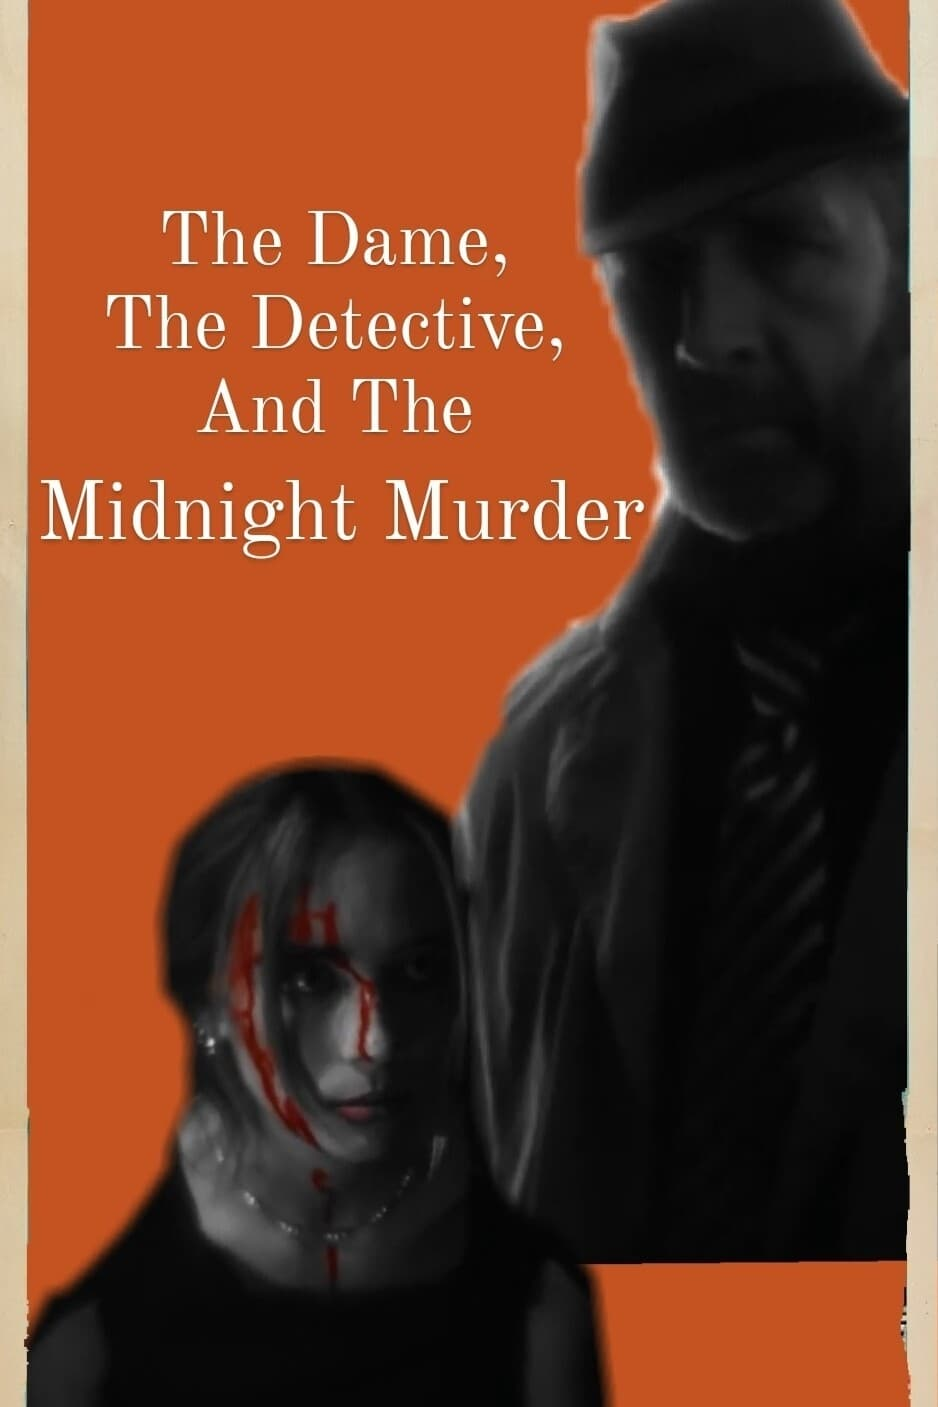 The Dame, The Detective, And The Midnight Murder (2021)